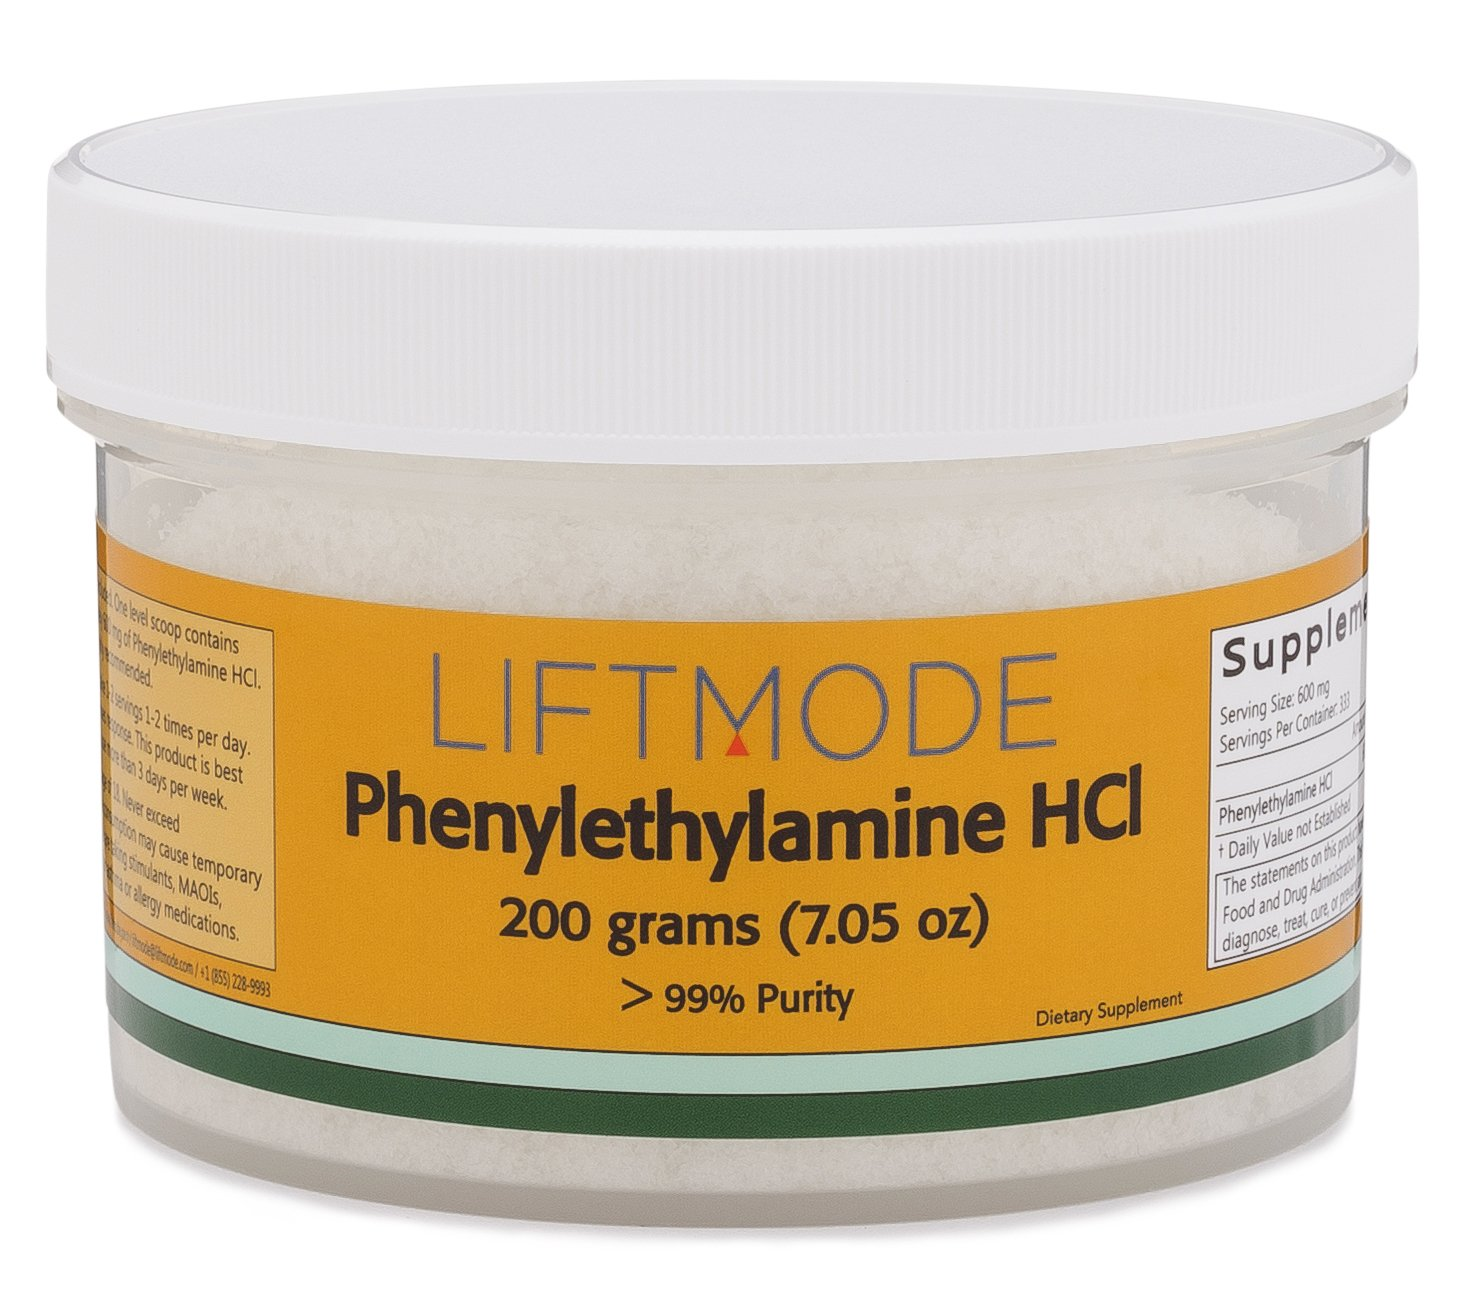 LiftMode Phenylethylamine HCL (PEA) Powder 99+% Pure - 200 Grams (330 Servings at 600 mg) | #Top Bulk Supplement | Increases Mood, Energy & Focus | Vegetarian, Vegan, Non-GMO, Gluten Free